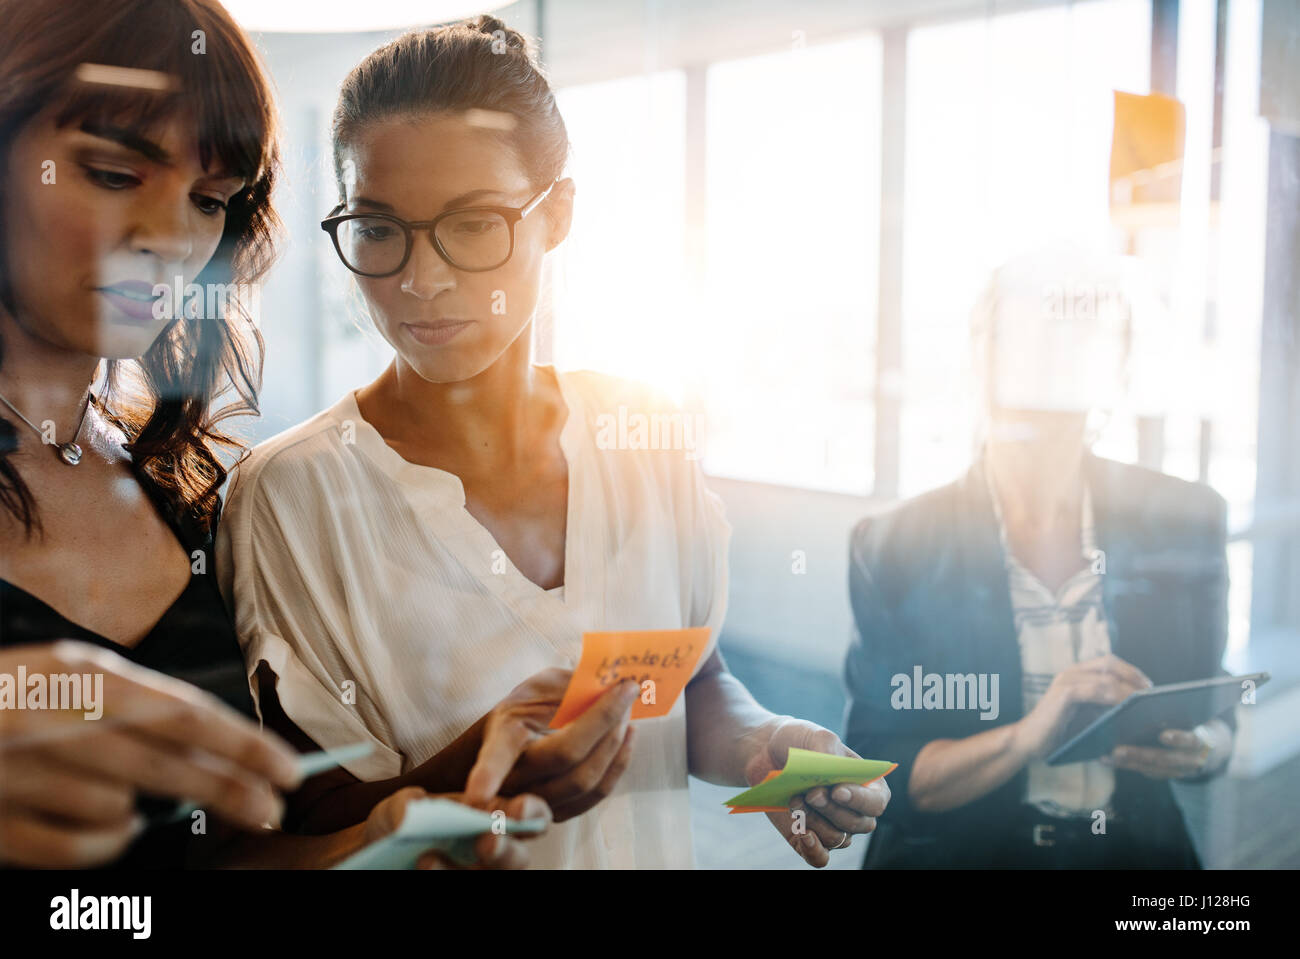 Business women discussing in front of glass wall using post it notes and stickers. Corporate professionals using - Stock Image